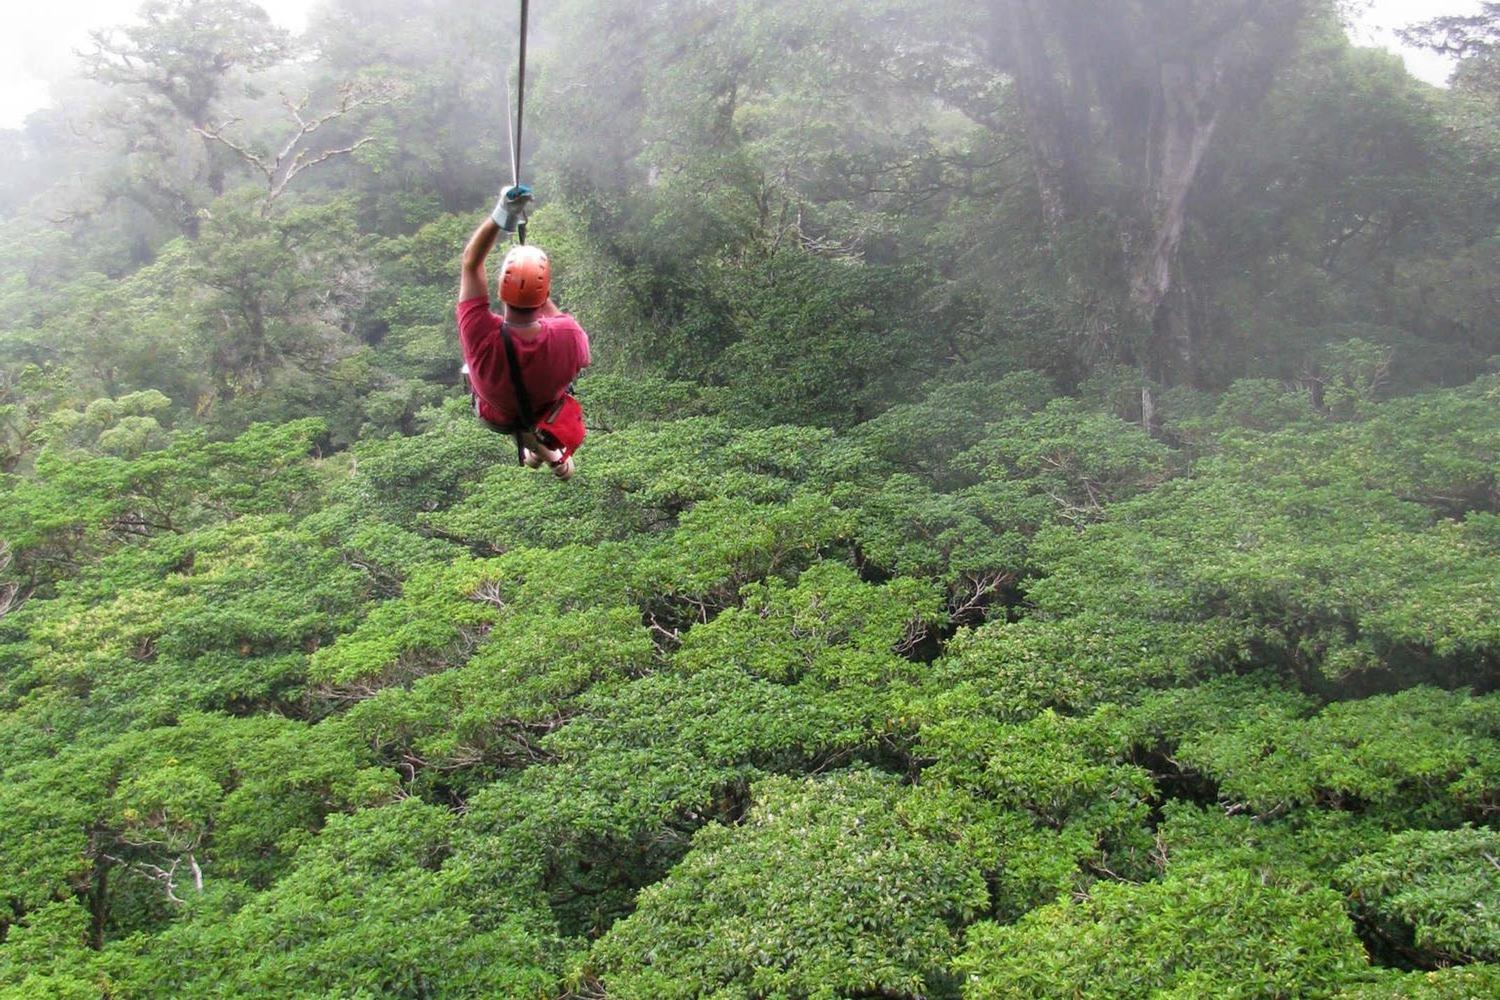 costa-rica-monteverde-man-ziplines-though-the-cloud-forest